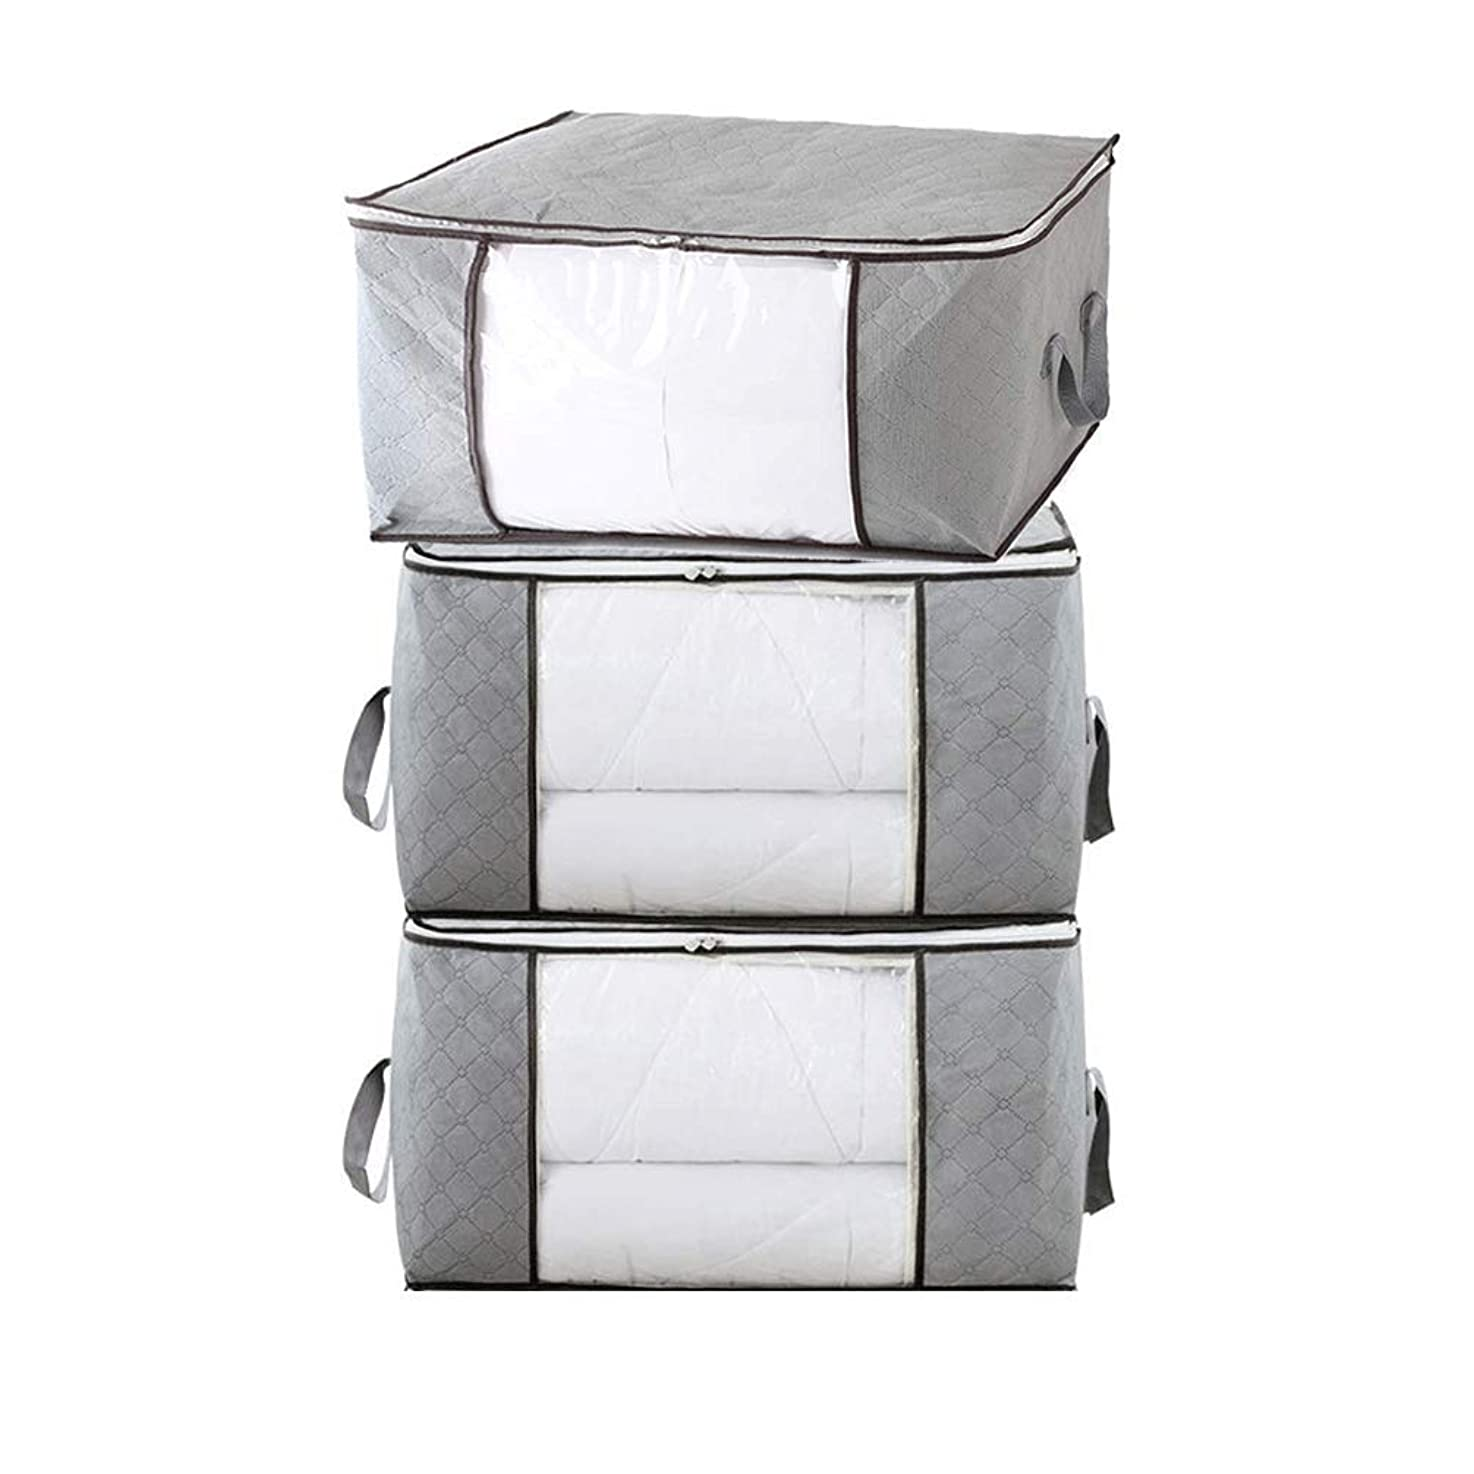 Fitwayhi Clothes Storage Bags Organizers with Clear Window, Large Capacity for Clothes, Blankets, Closets, Bedrooms, and More (Set of 3, Gray)